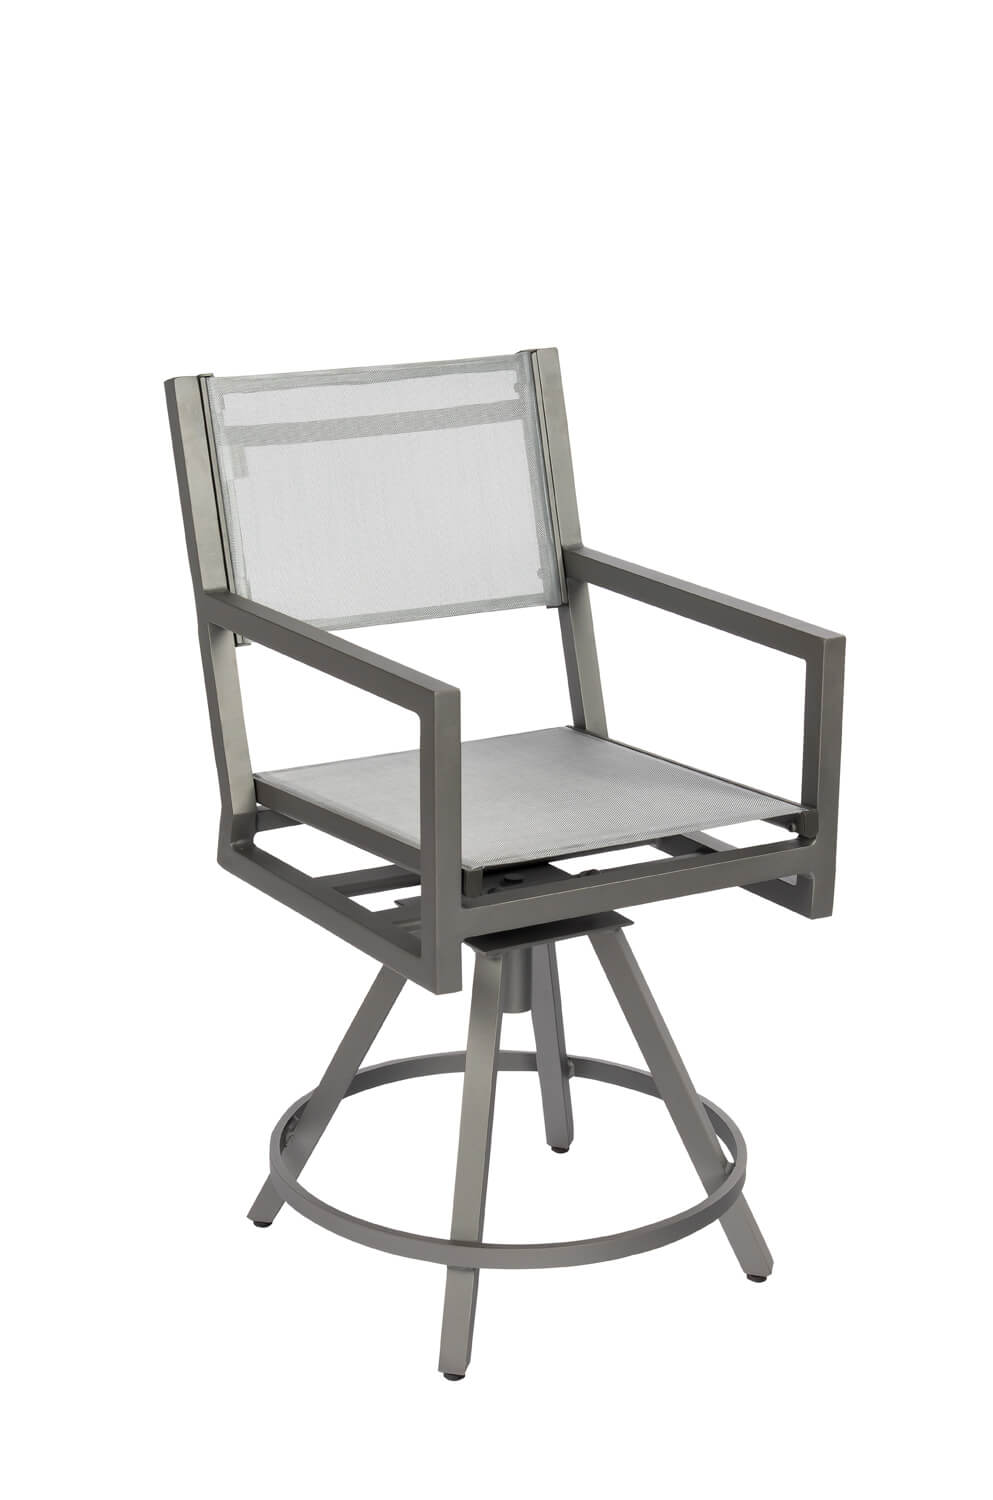 Outstanding Palm Coast Outdoor Sling Swivel Stool With Arms Andrewgaddart Wooden Chair Designs For Living Room Andrewgaddartcom